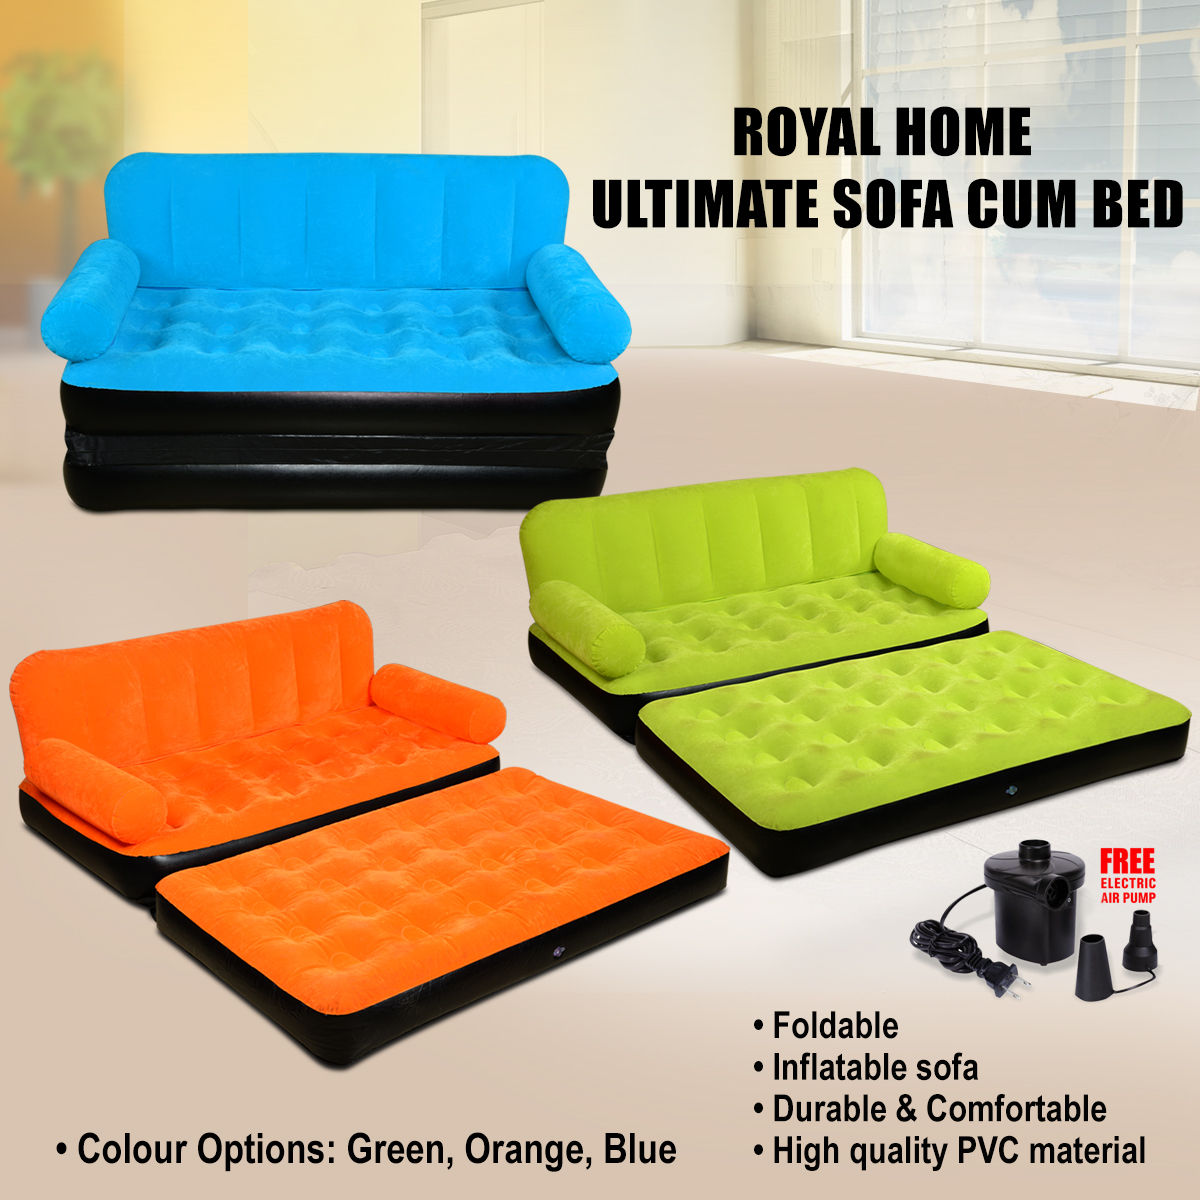 Online shopping for sofa cum bed